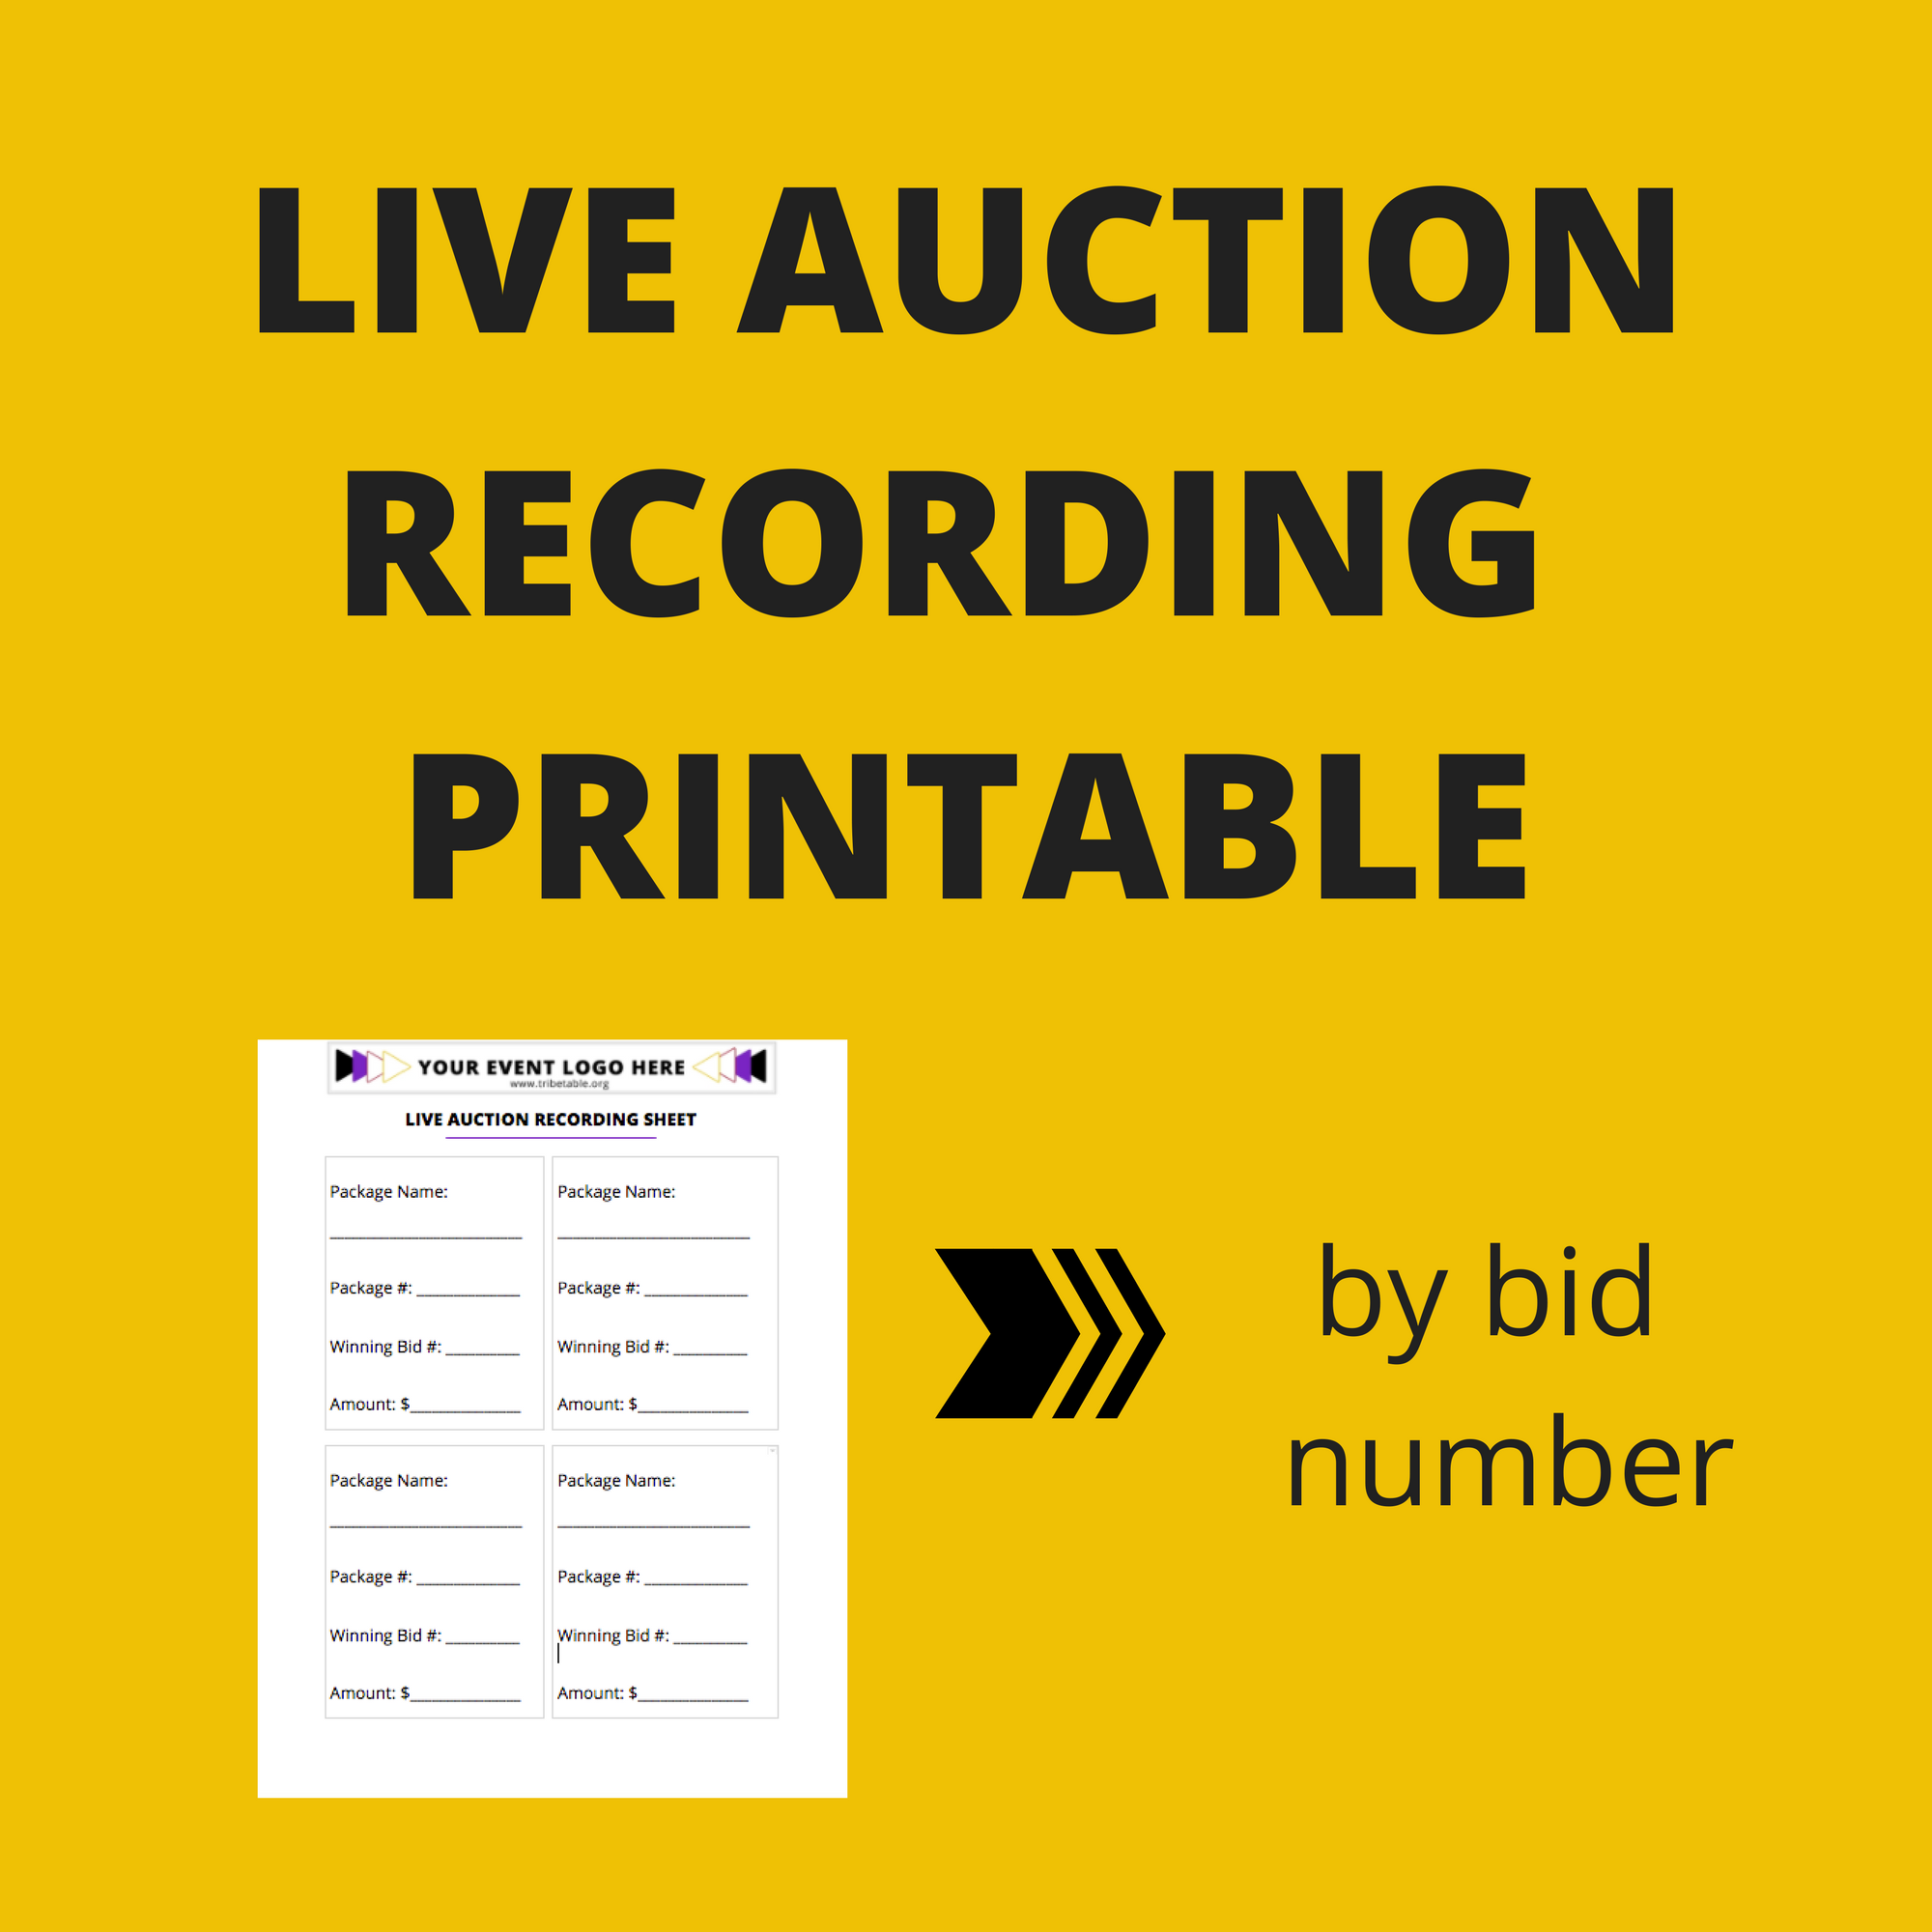 Live auction bid sheet printable (1).png